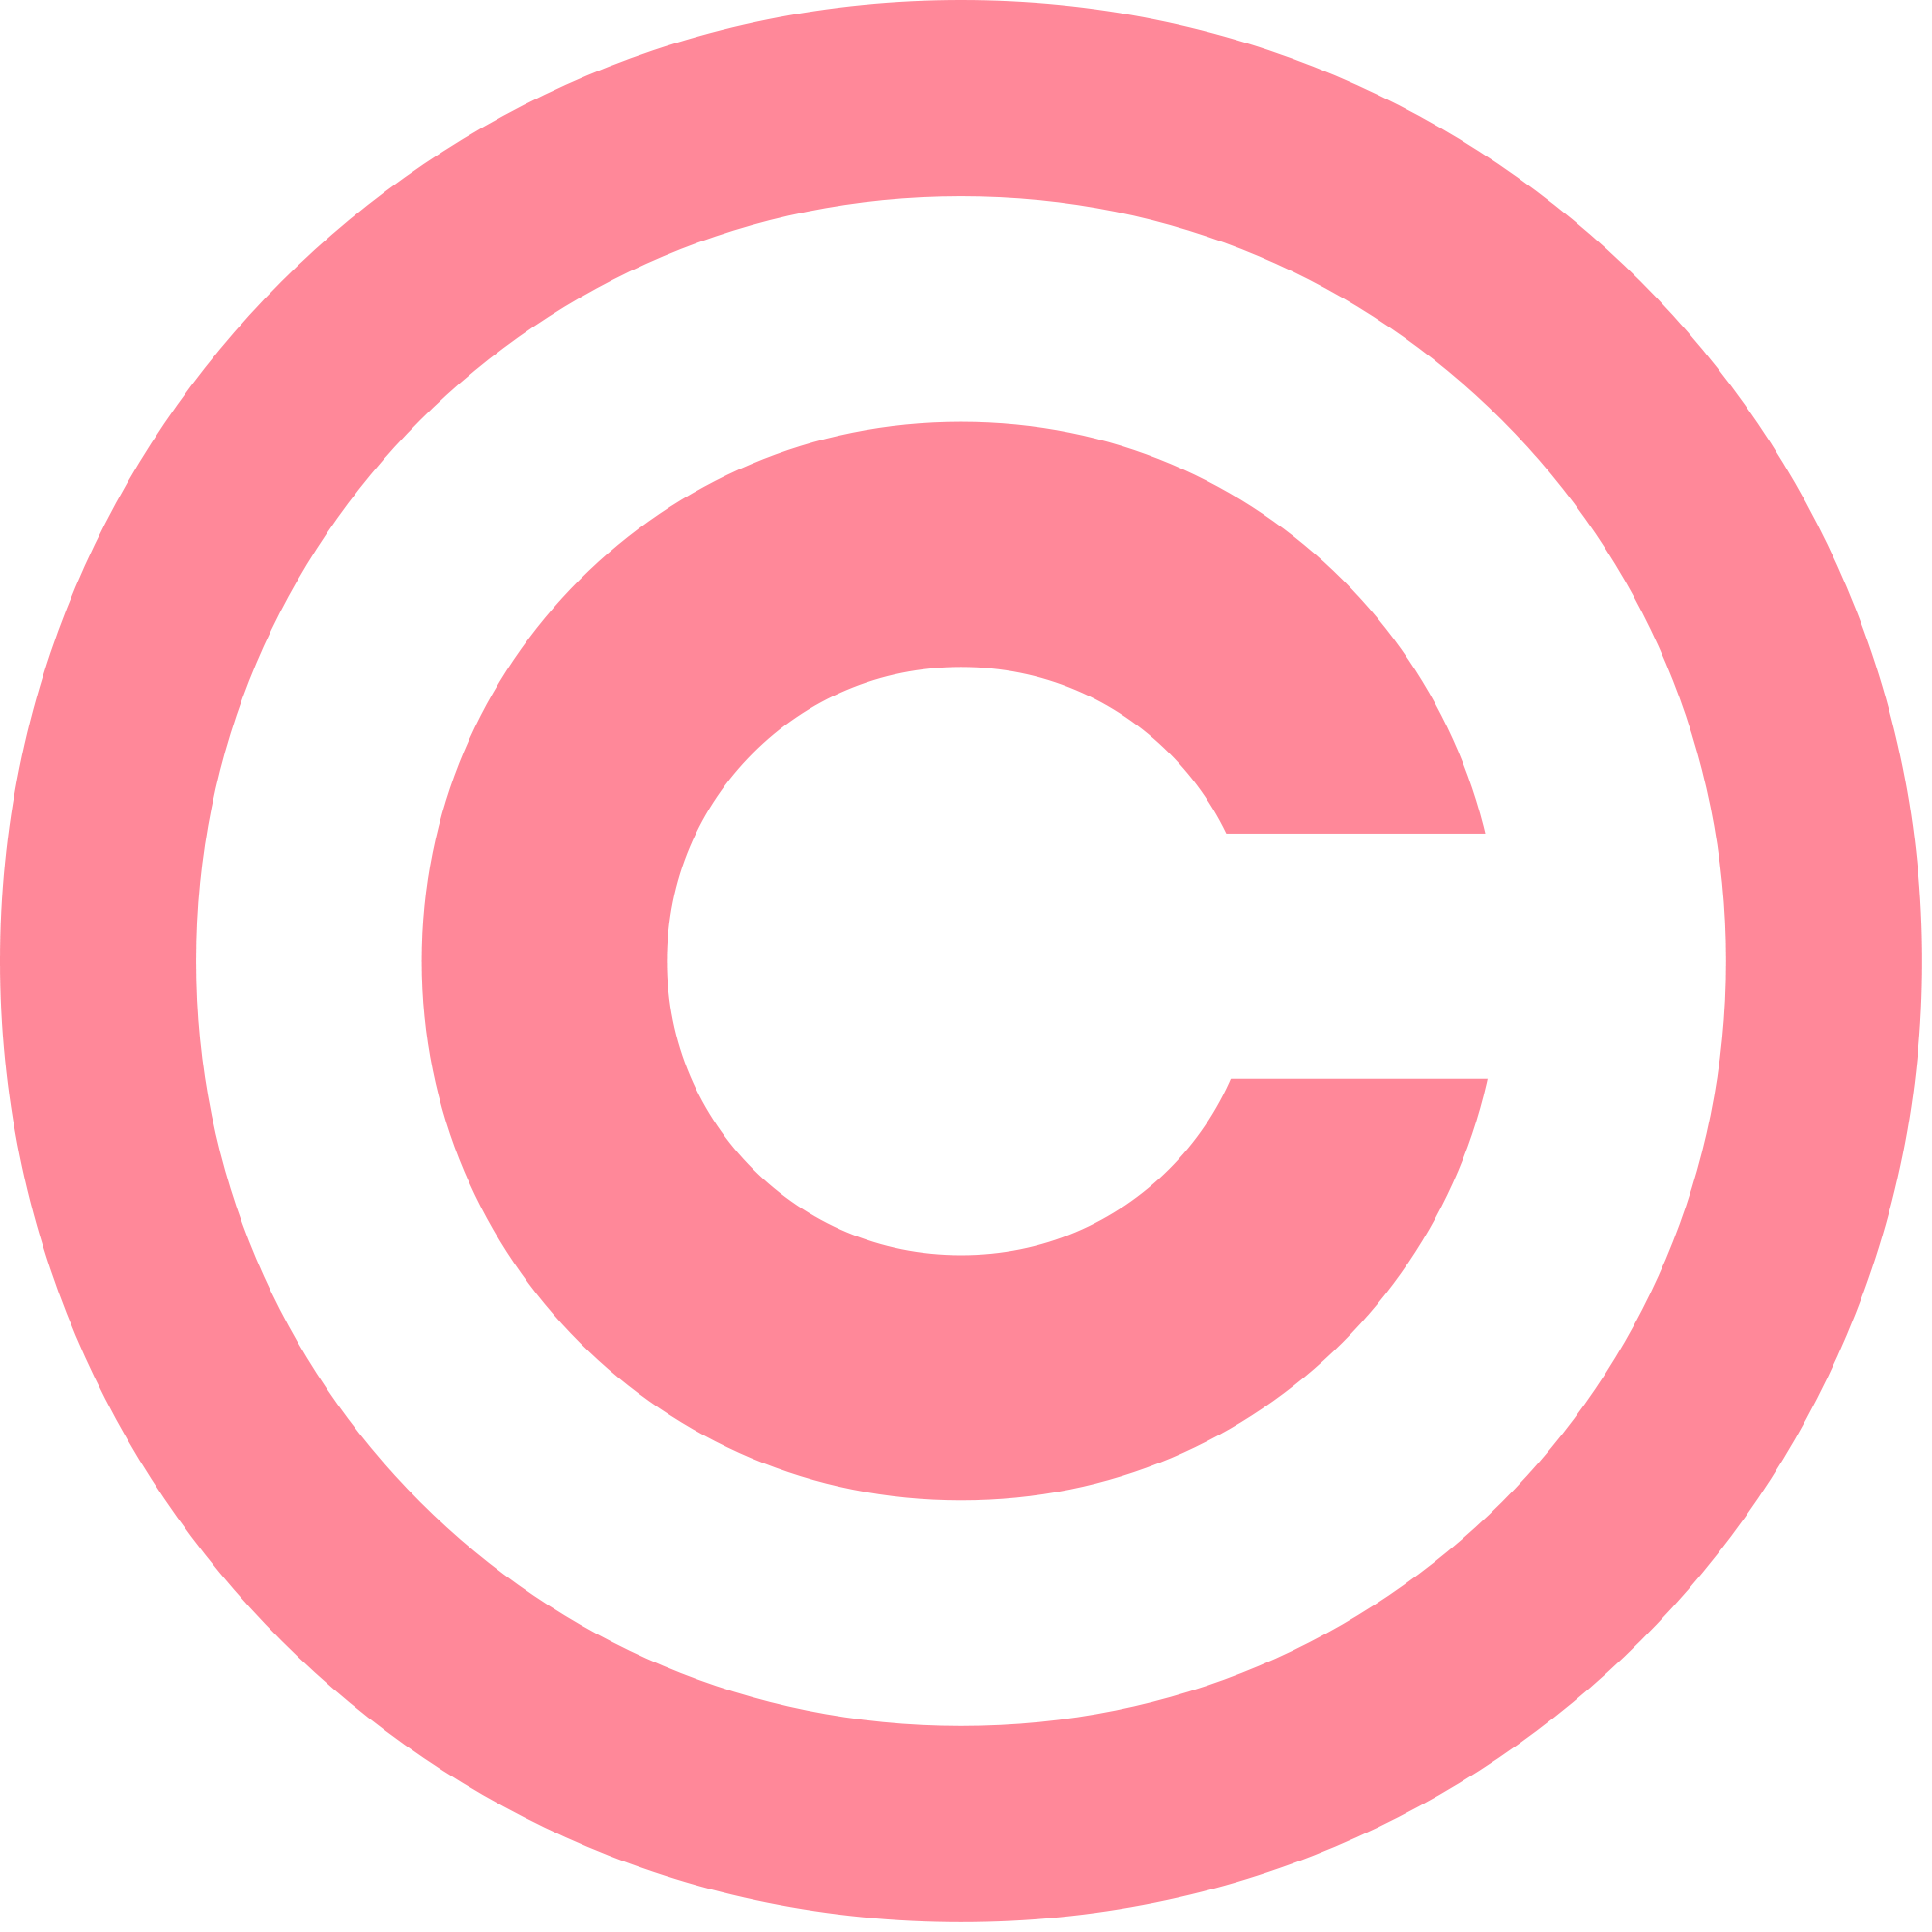 Copyright symbol png download. Web icons free of